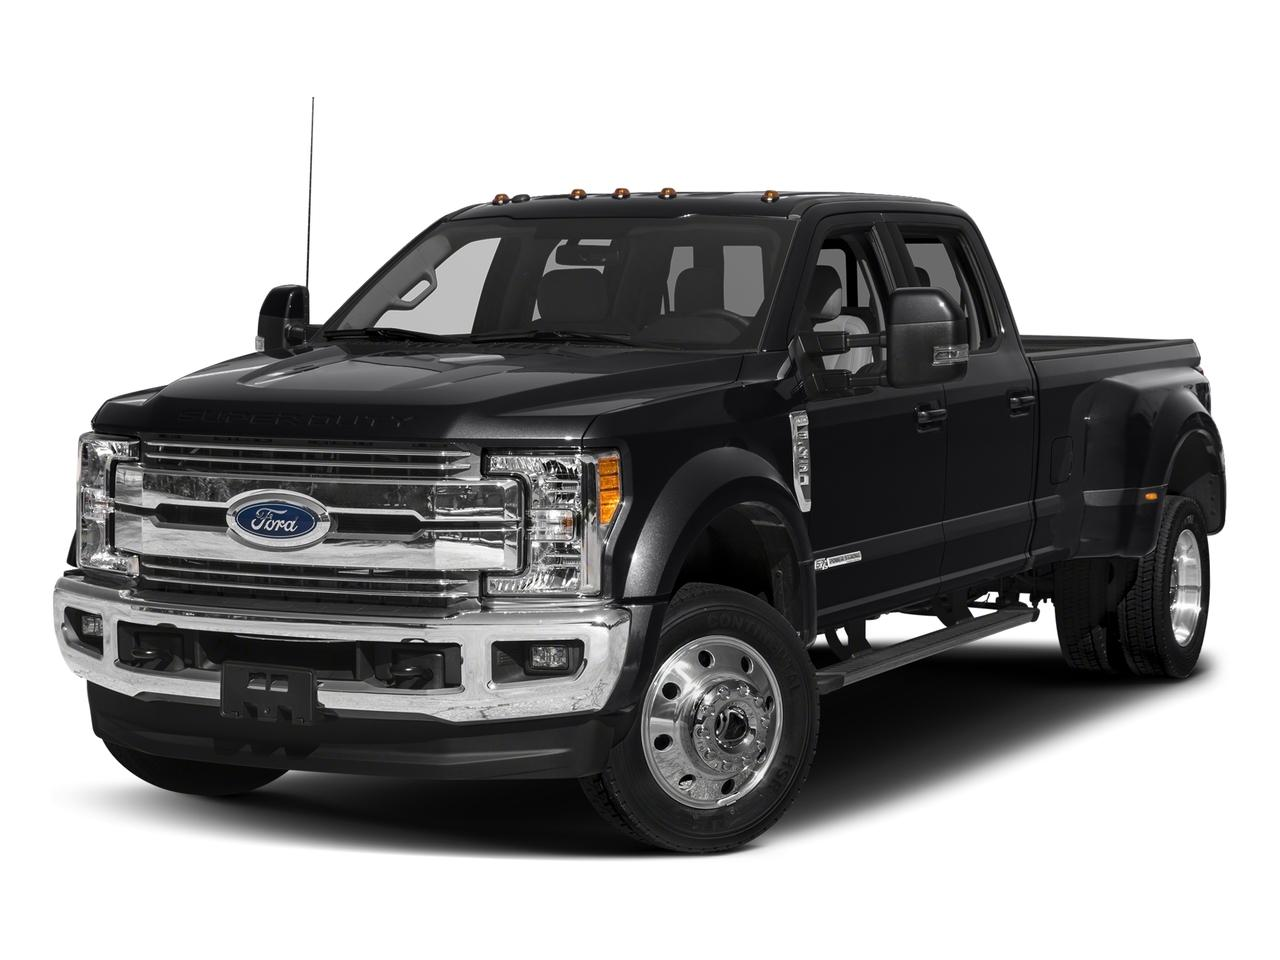 2017 Ford Super Duty F-450 DRW Vehicle Photo in Watertown, CT 06795